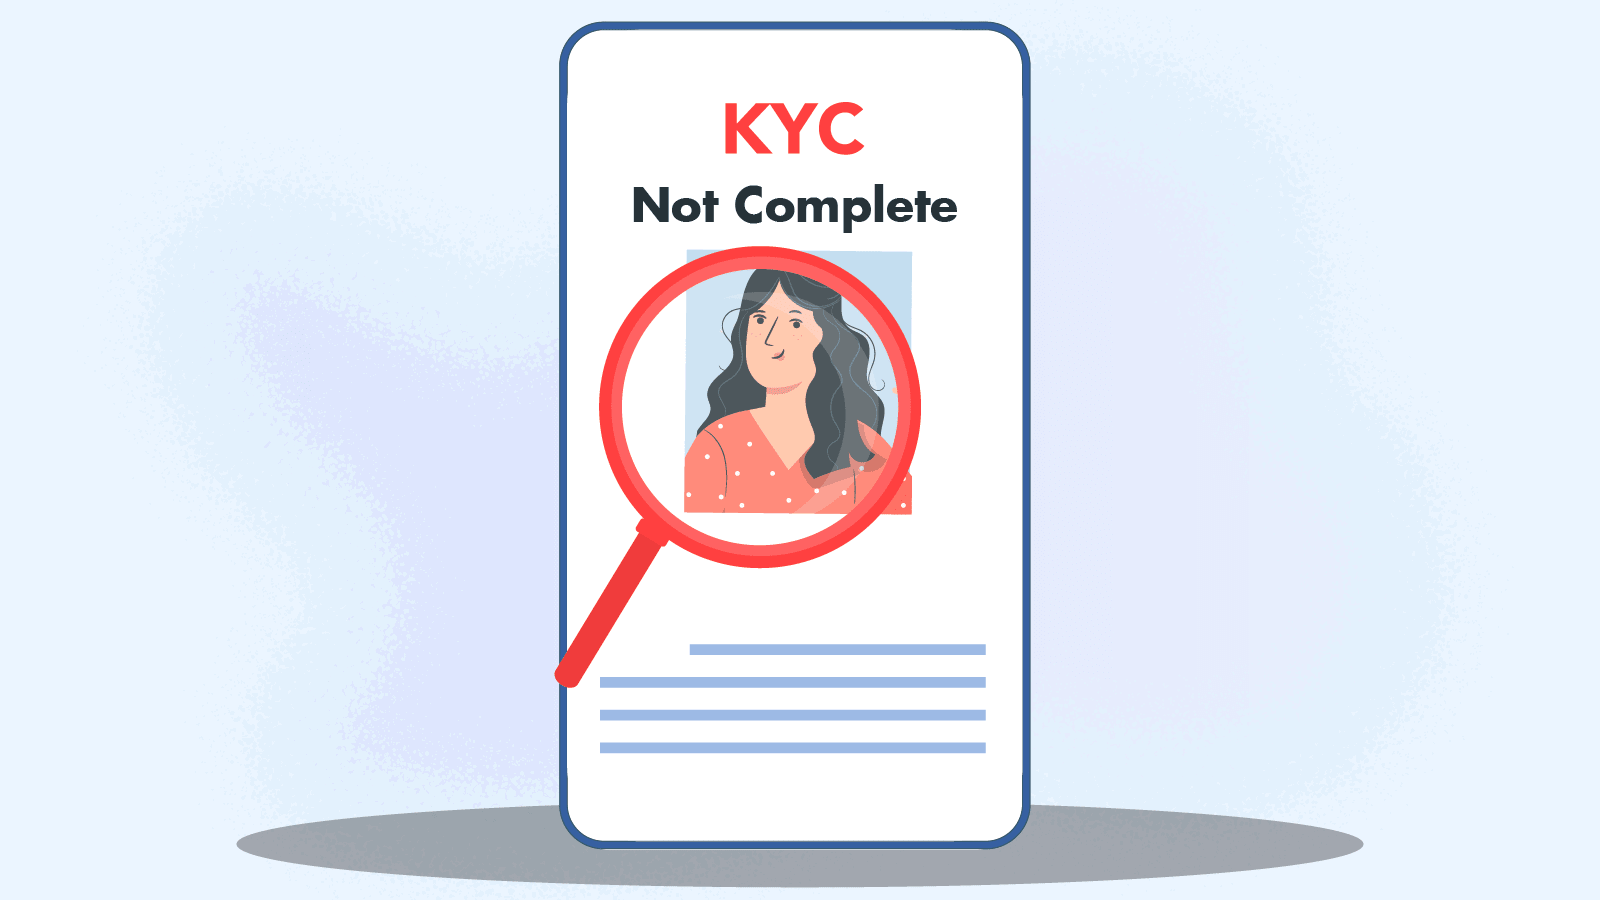 KYC is not complete